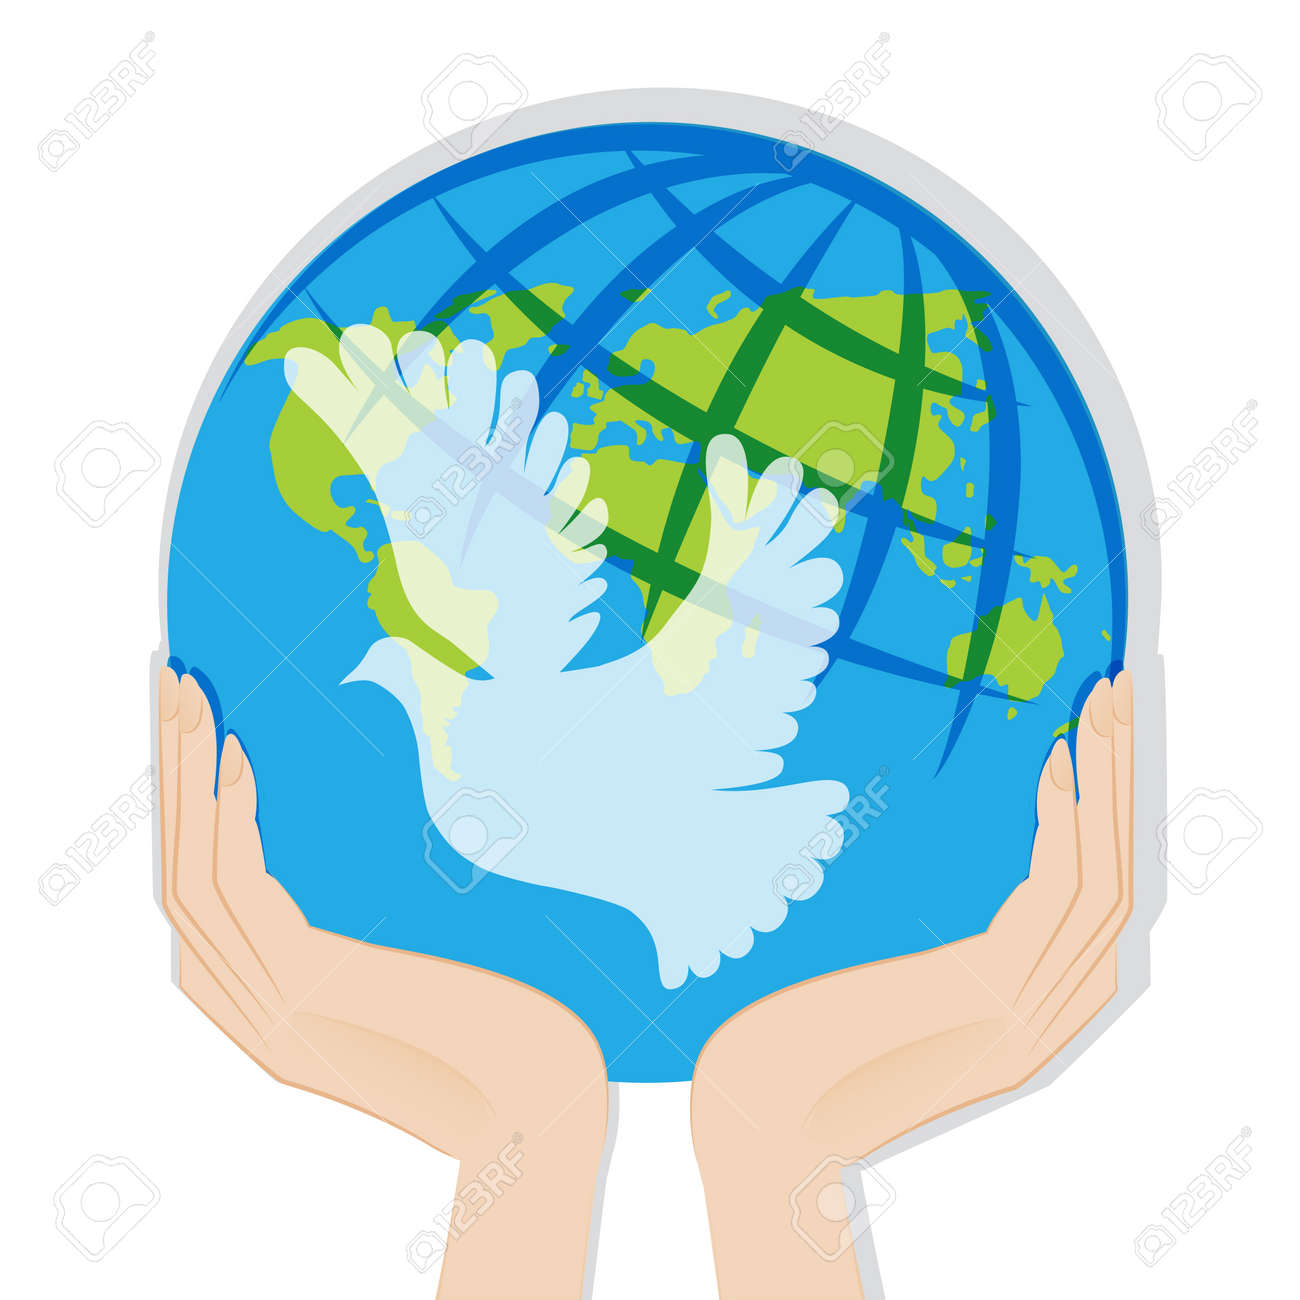 Earth in hands illustration isolated on white background Stock Vector - 19843216